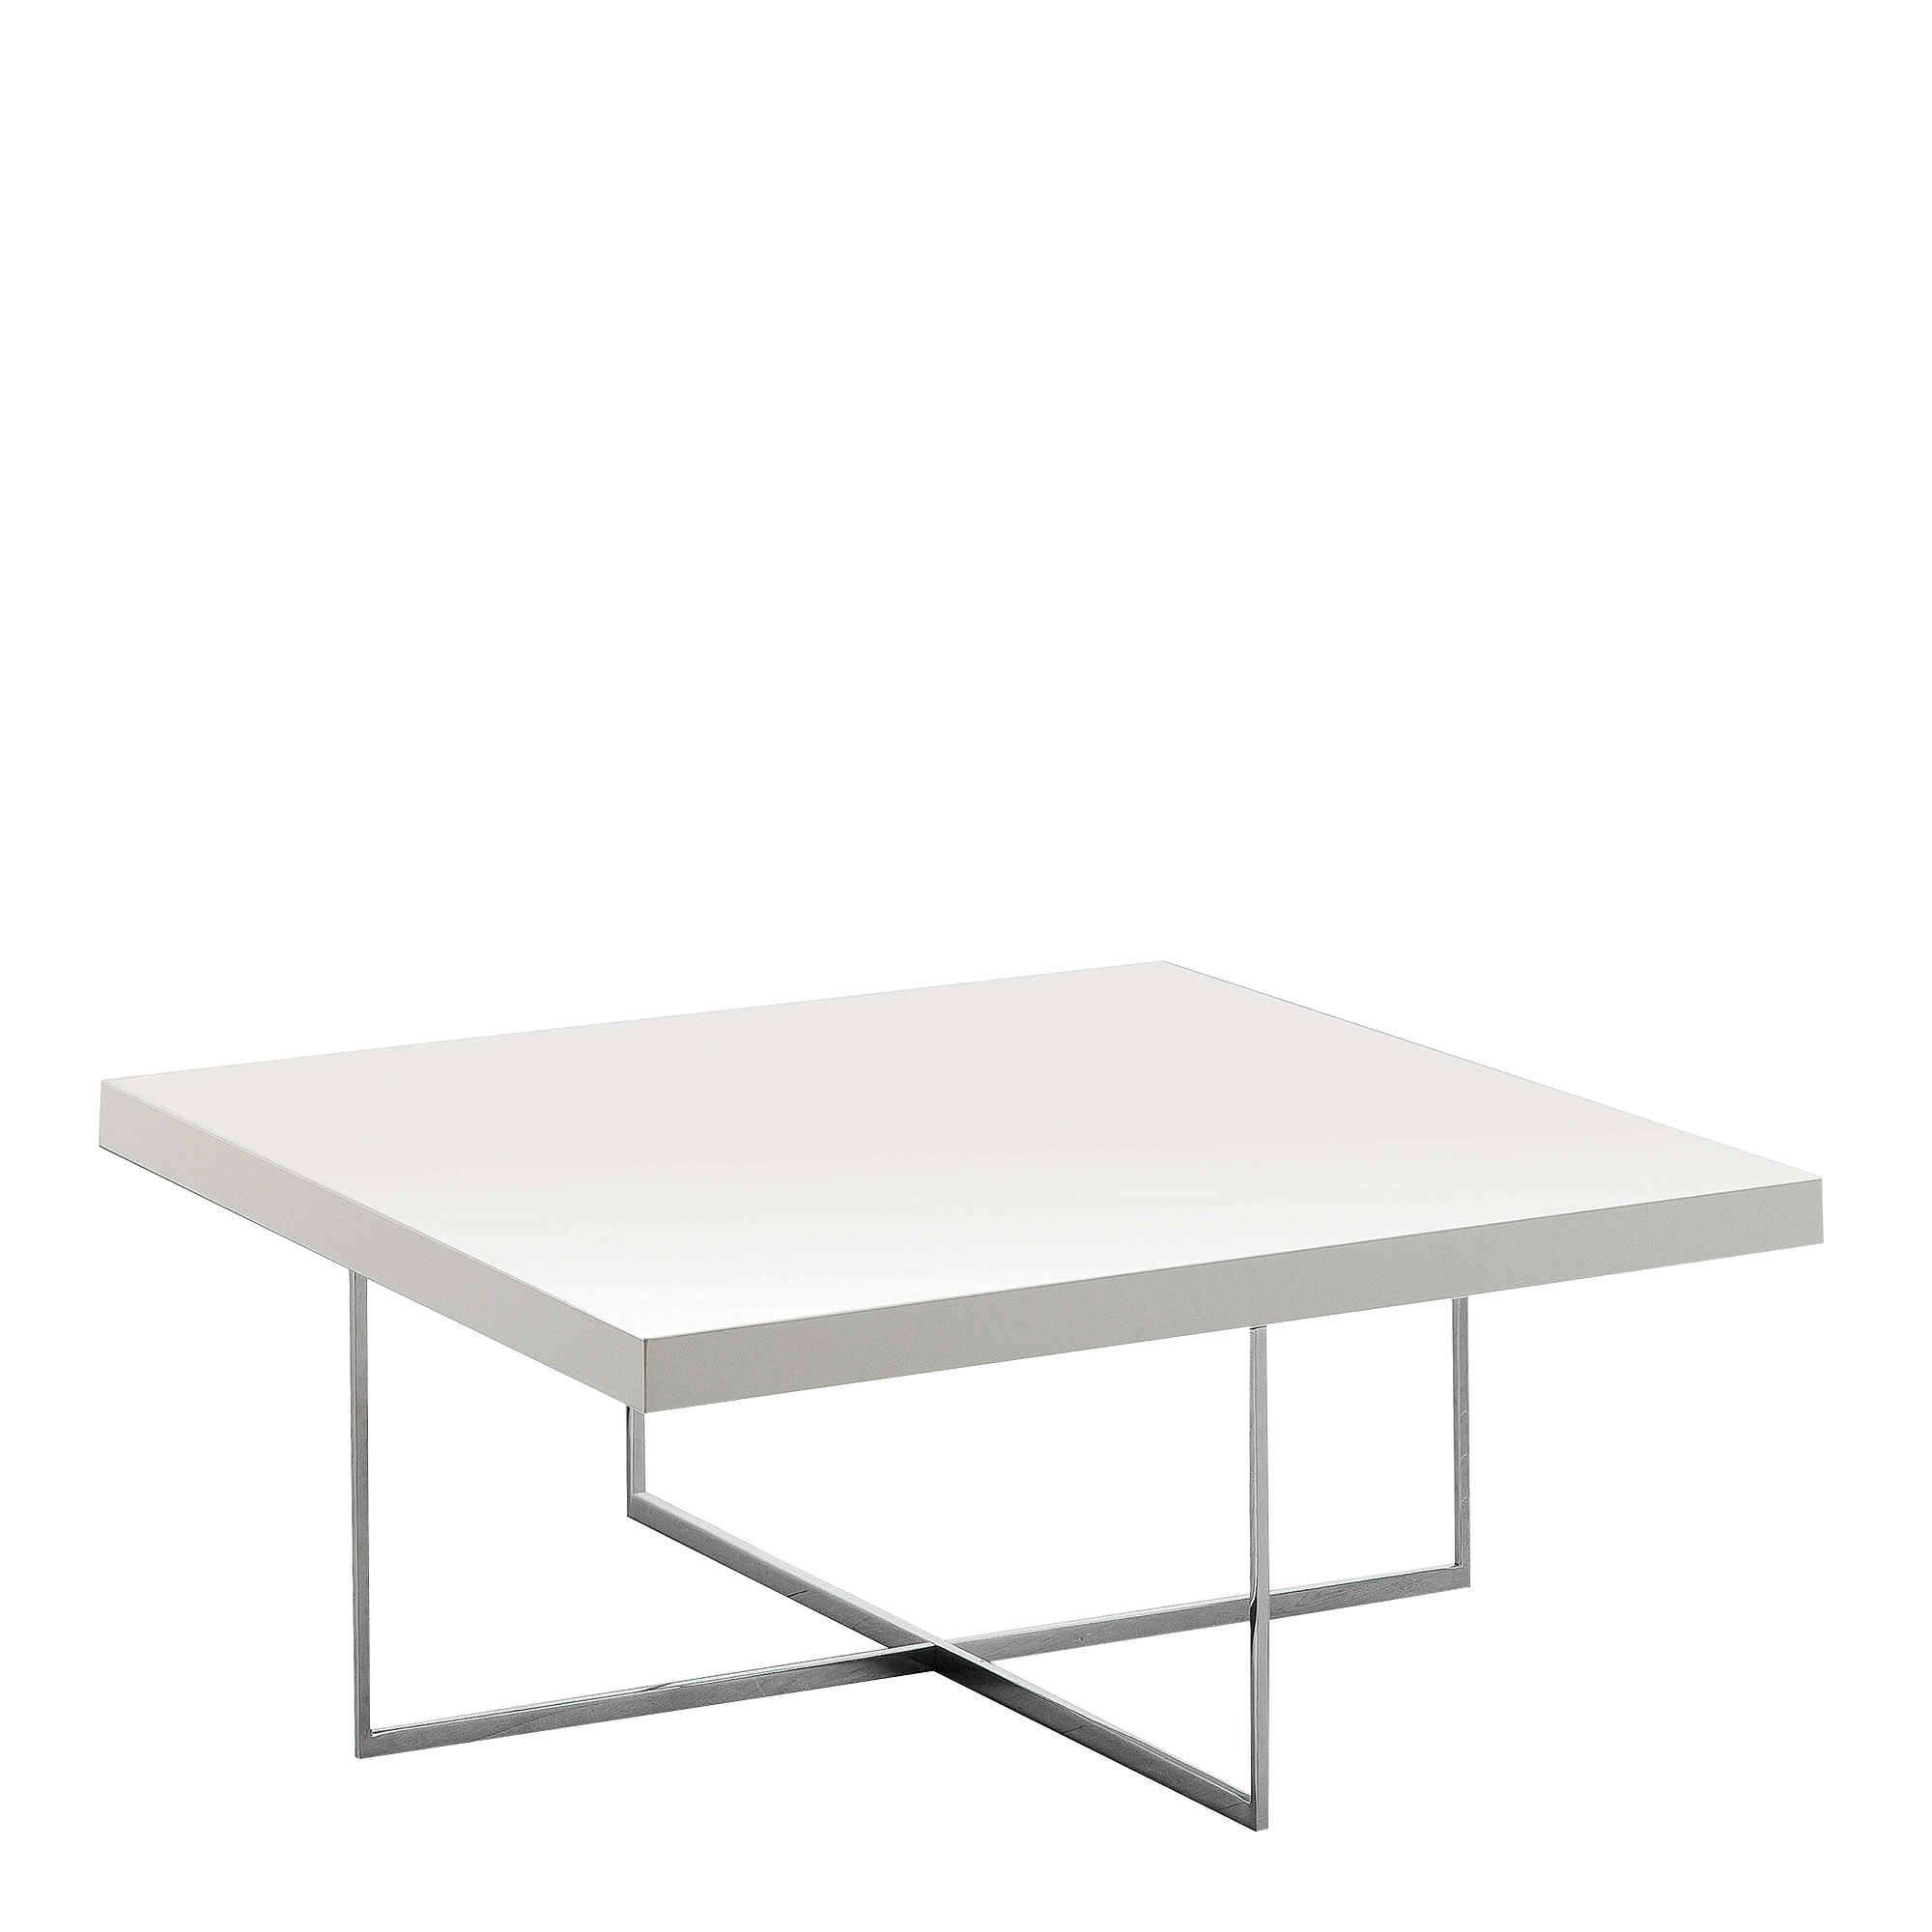 Bernini Square Coffee Table White High Gloss All Dining Ranges